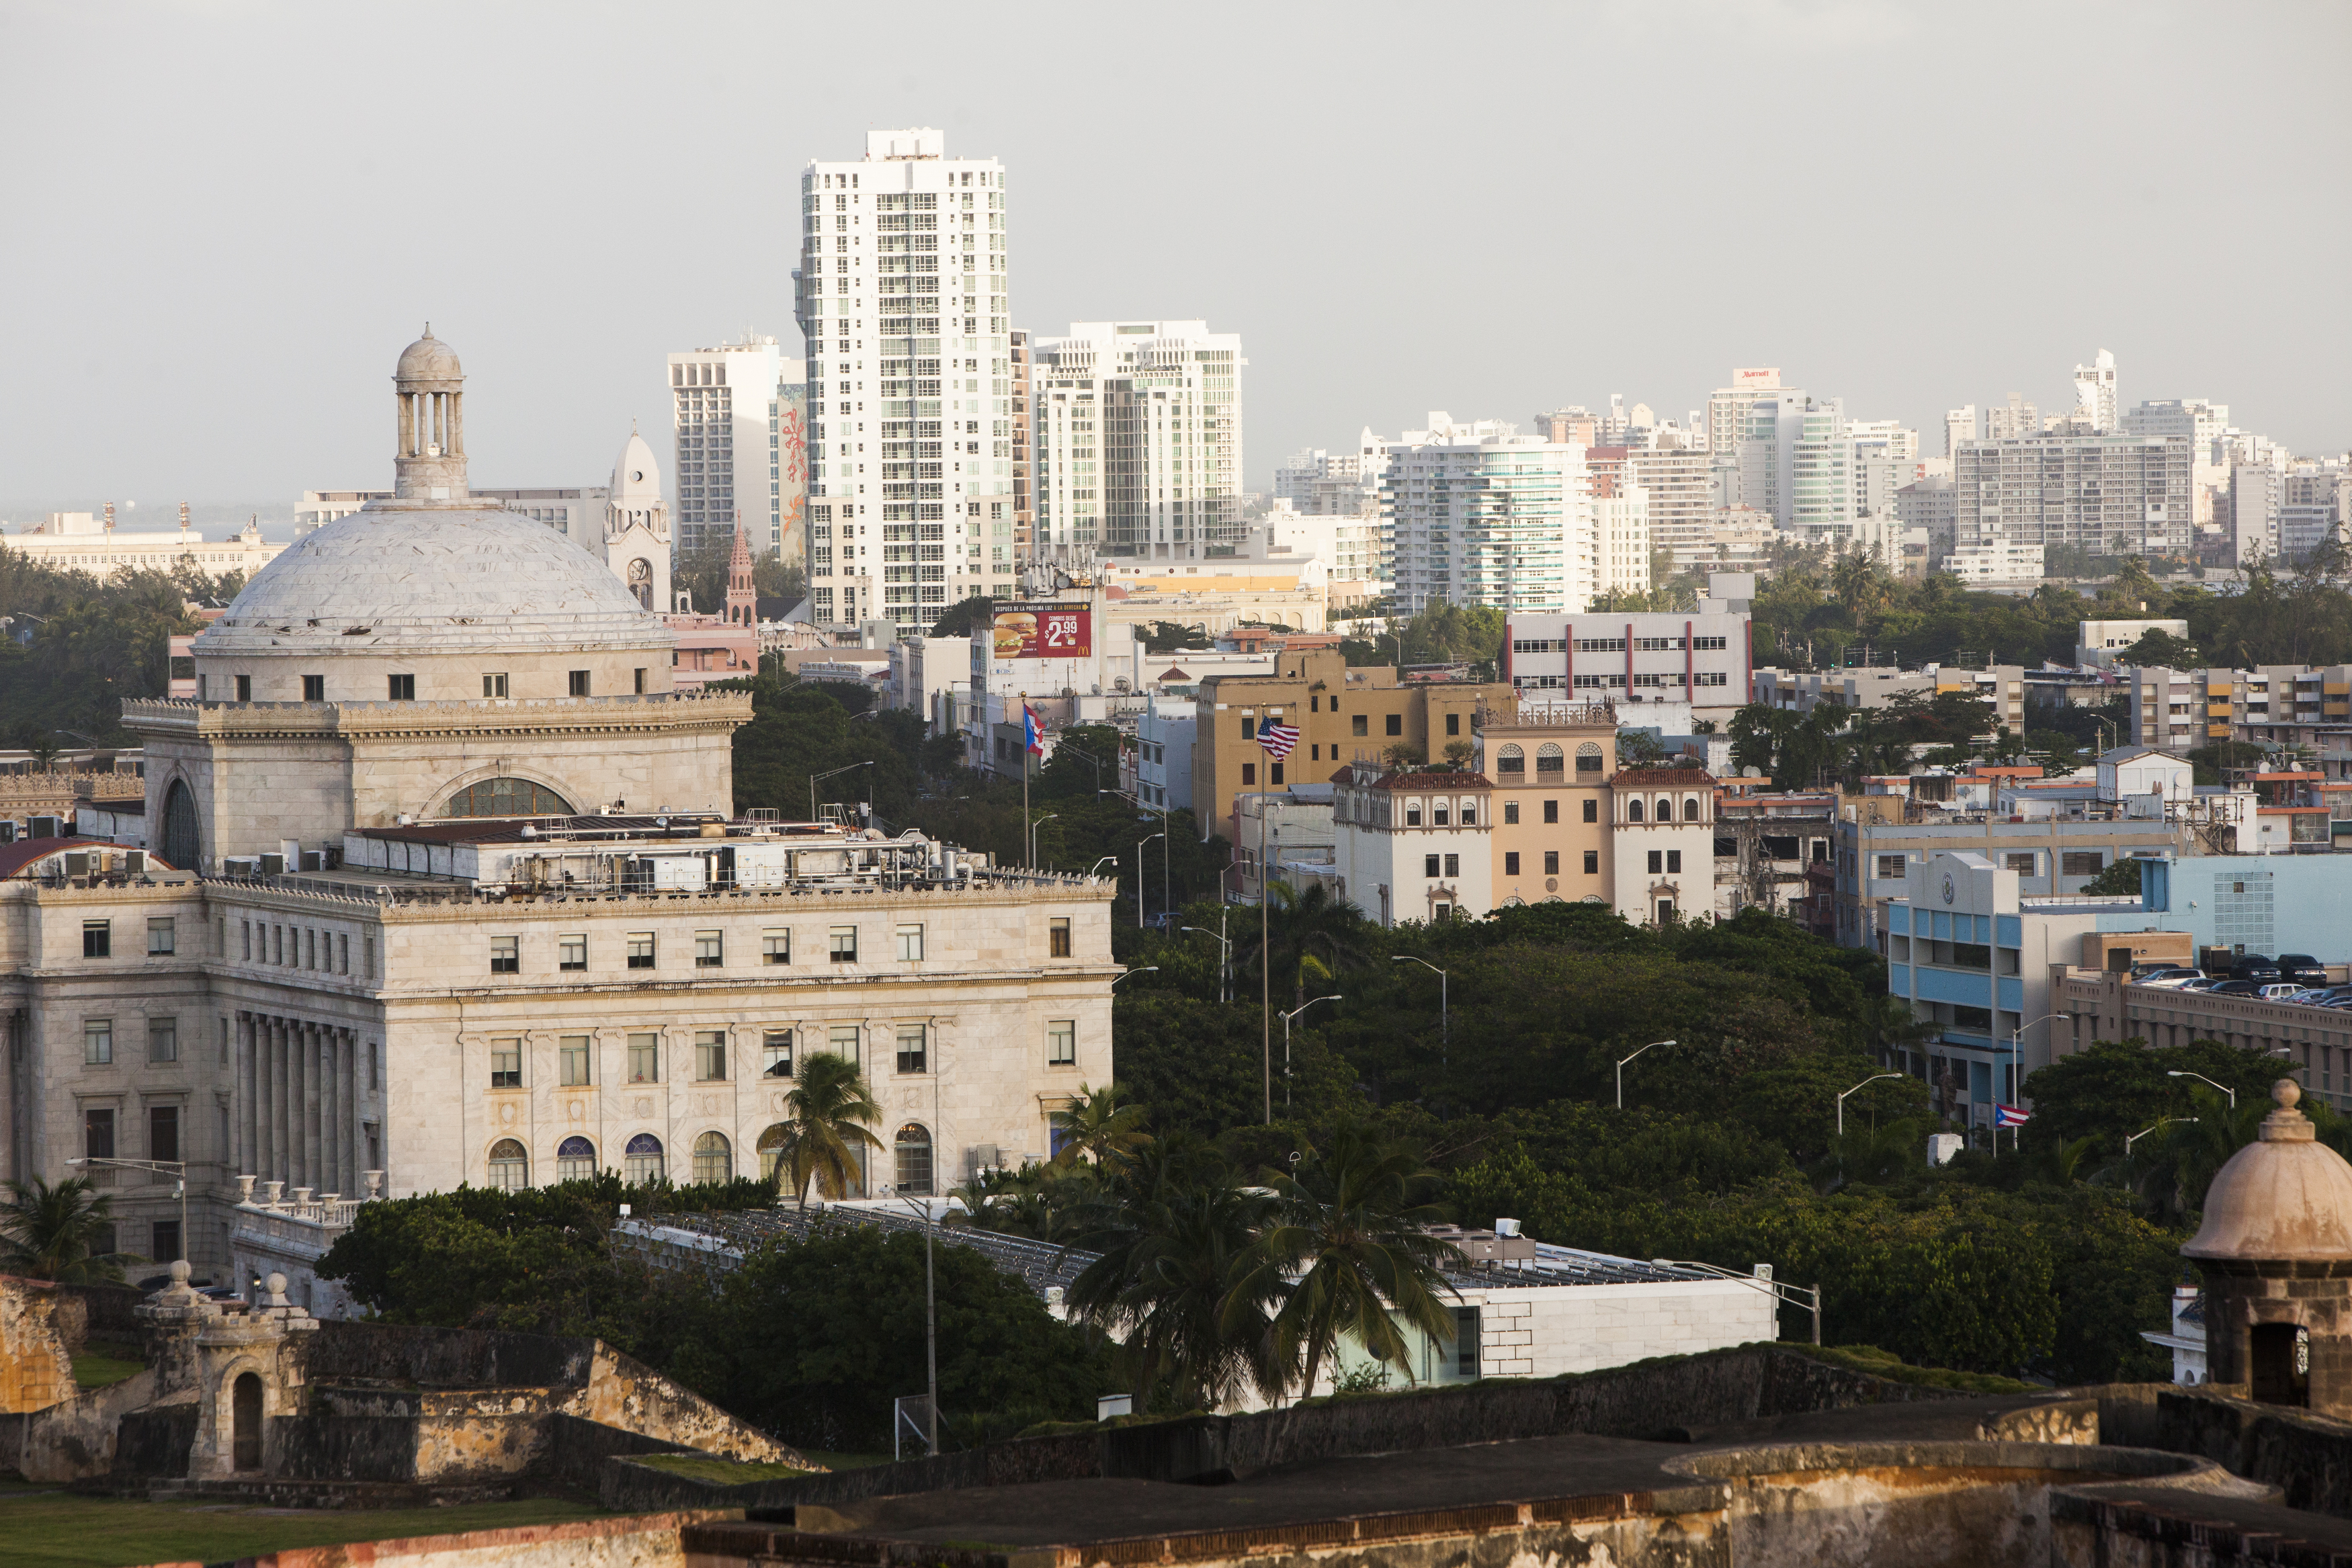 Old San Juan, the center for Puerto Rican tourism, on November 12, 2013.